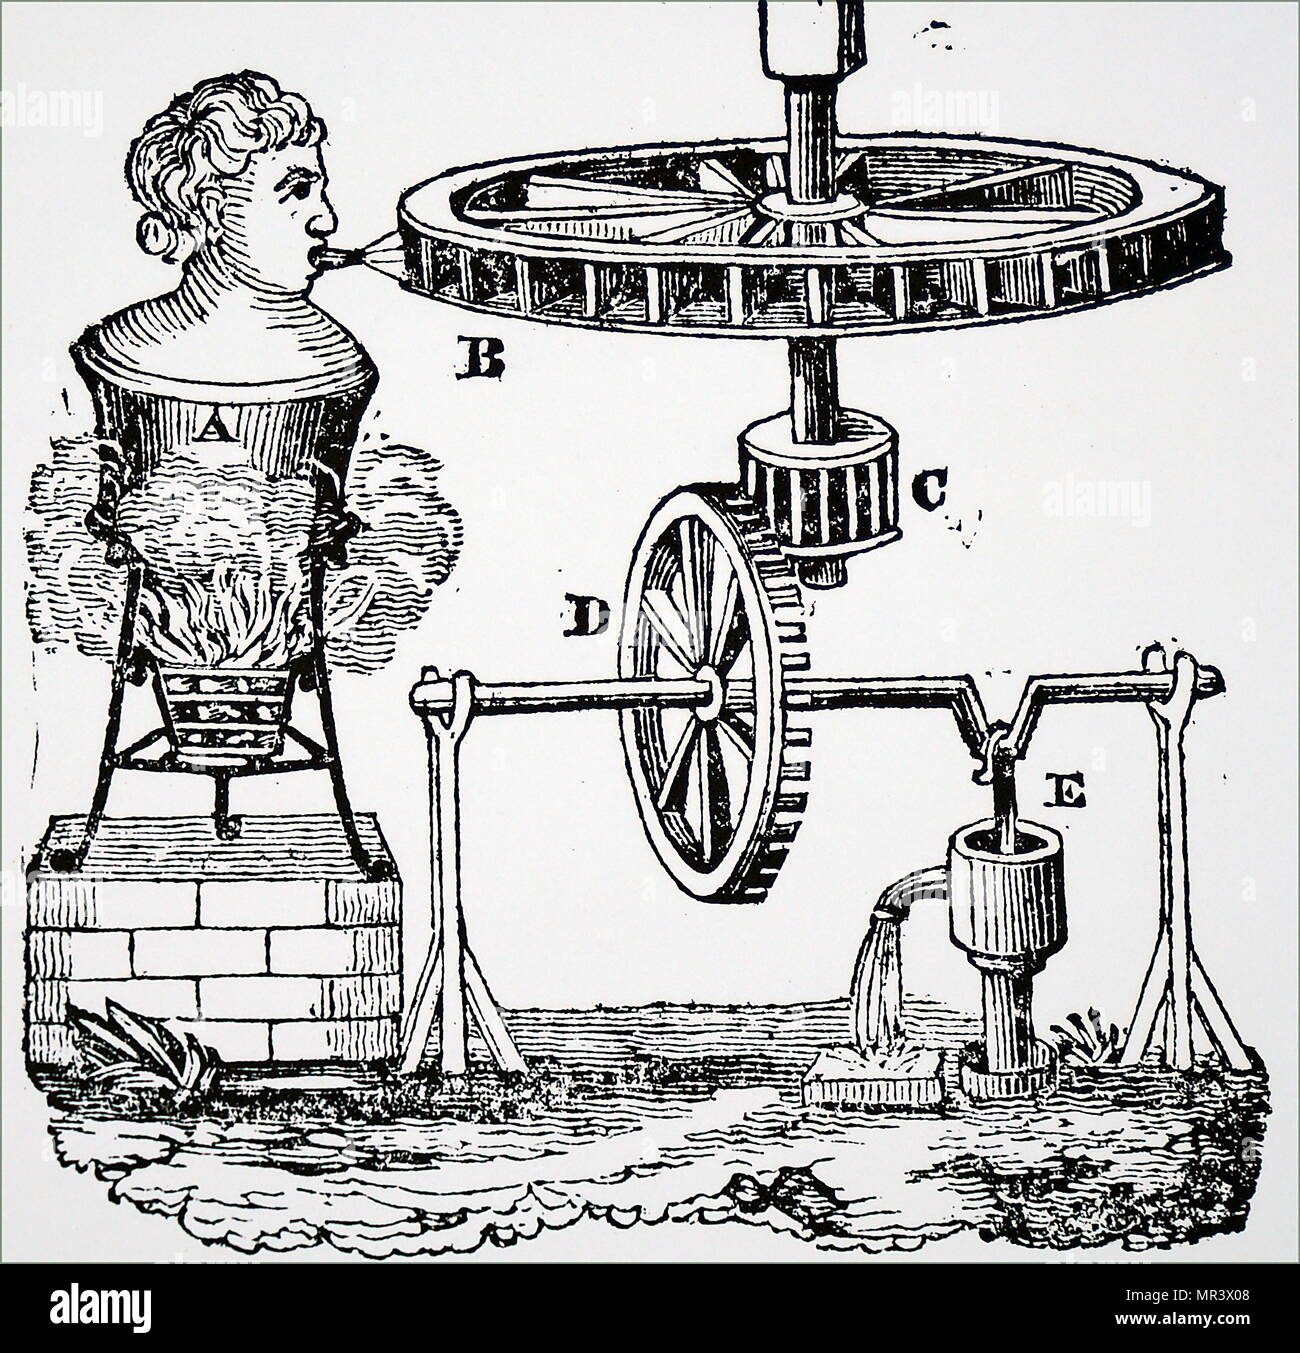 Steam Engine Diagram Stock Photos Diesel Animation How Works Depicting Giovanni Brancas 1629 Being Used To Work A Stamping Mill